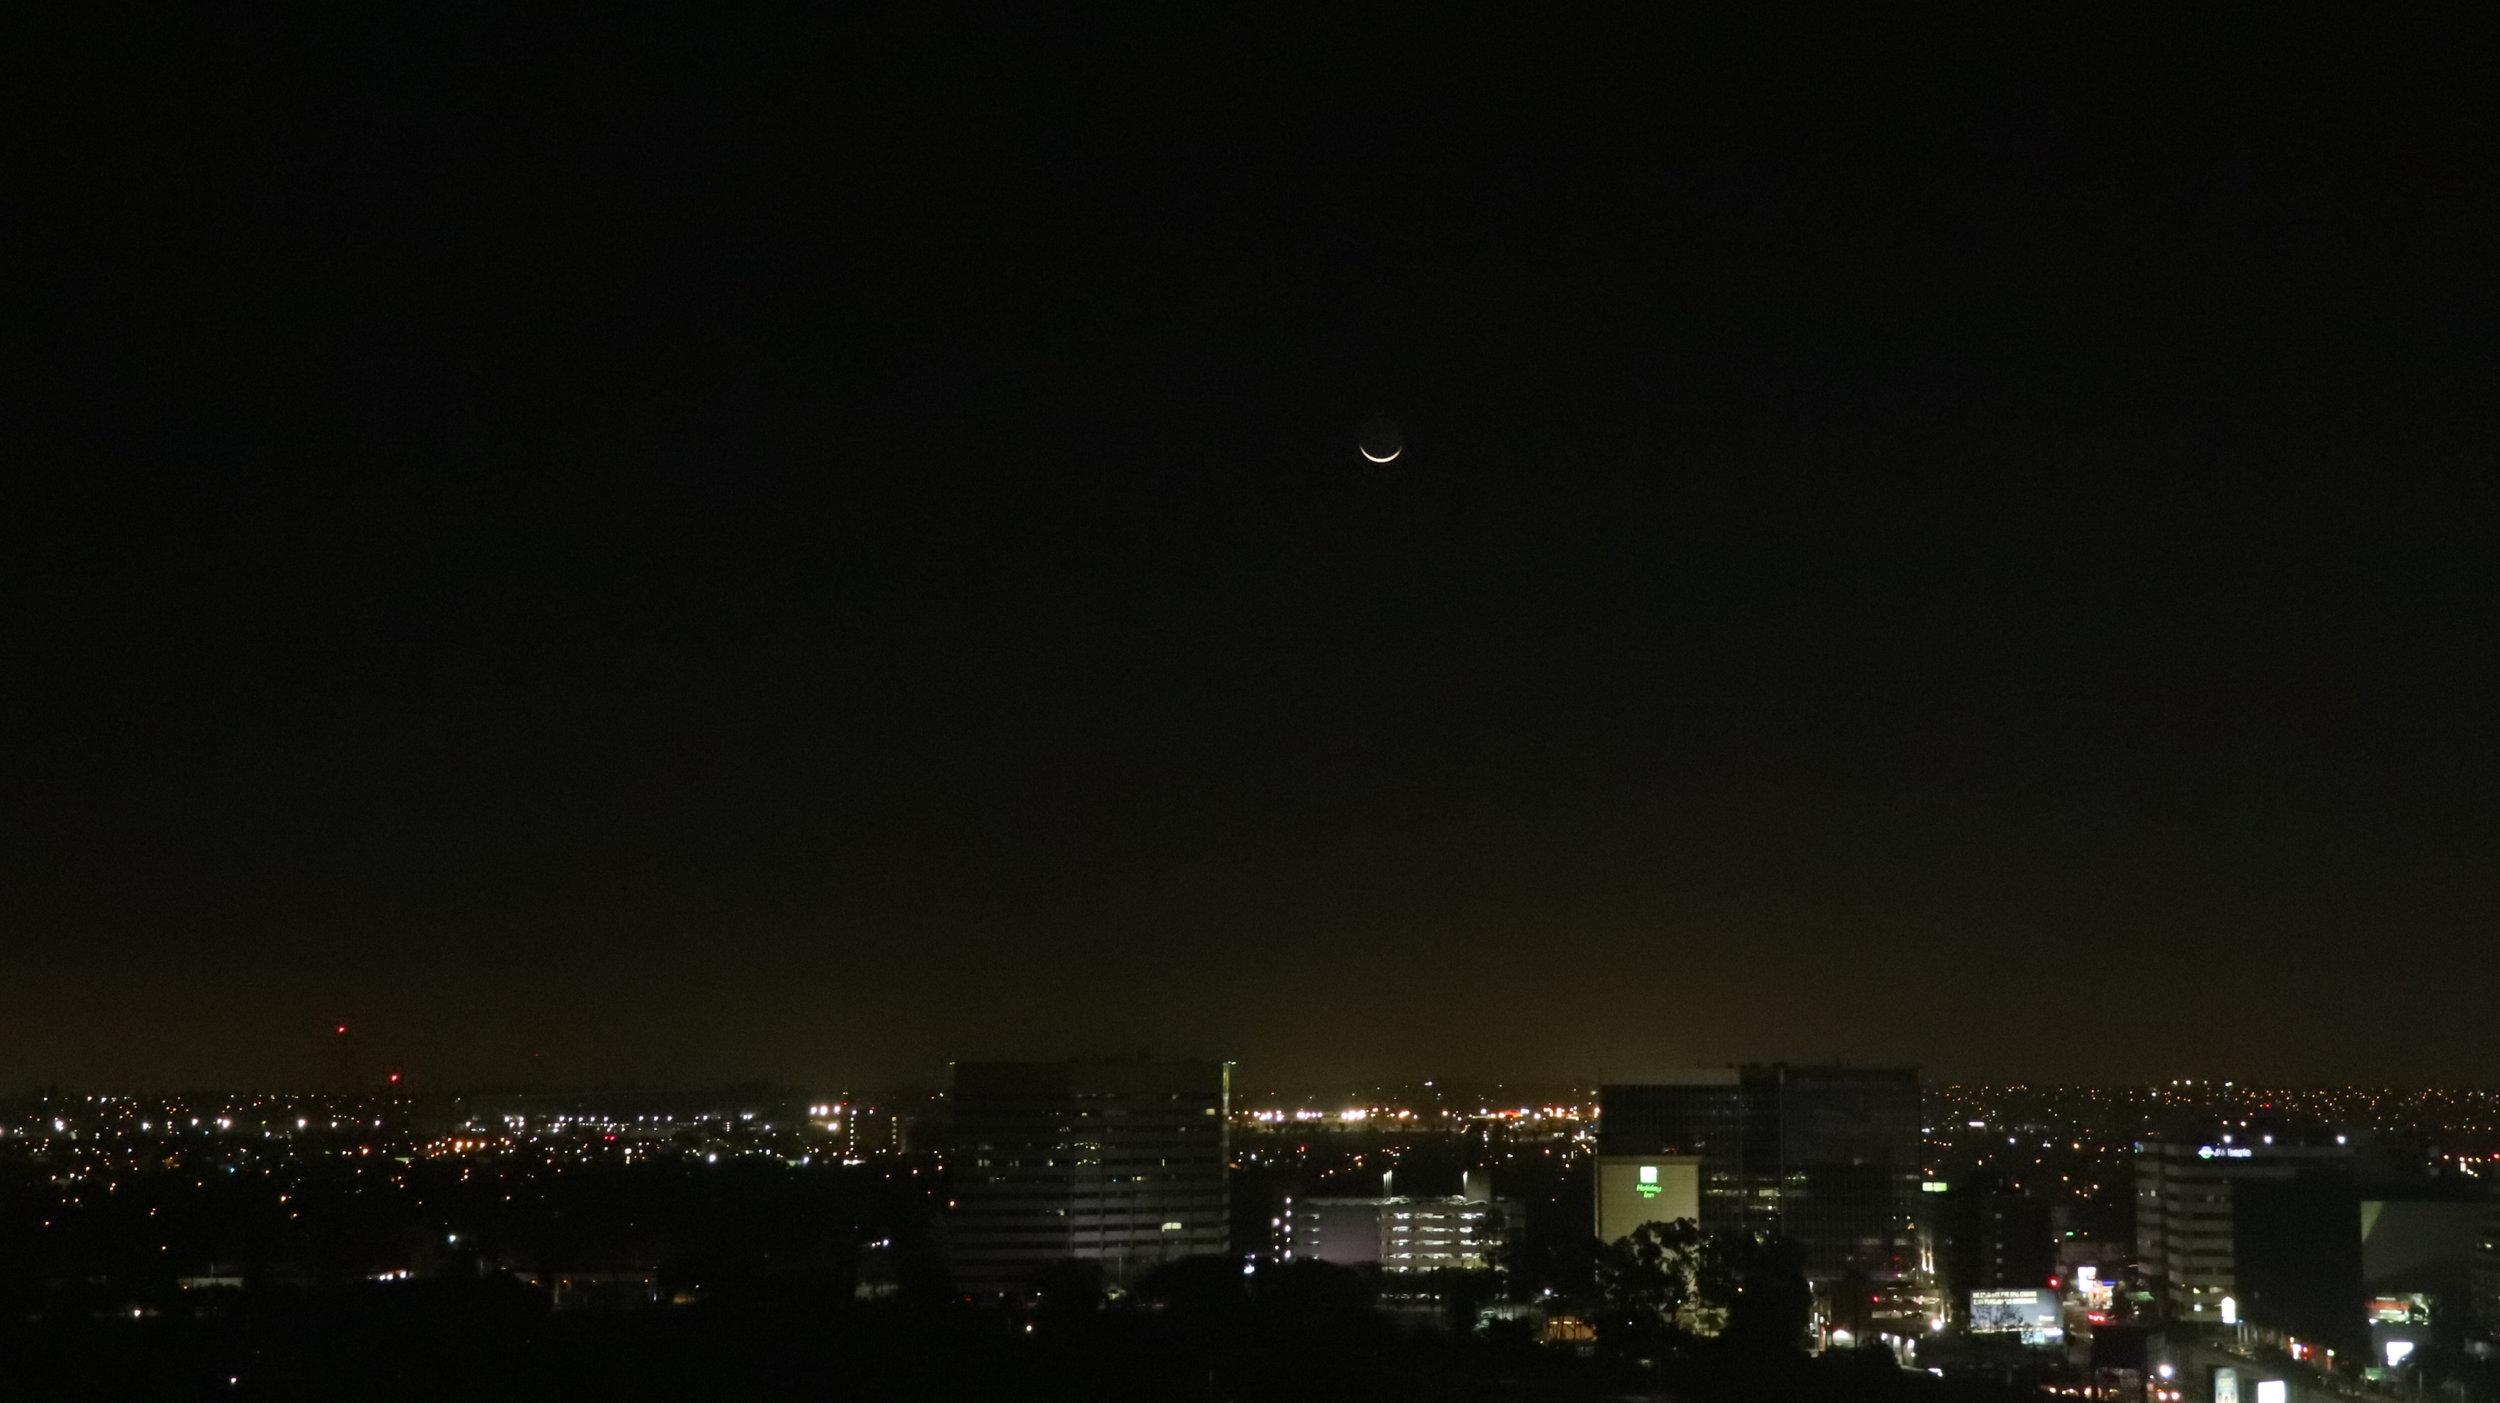 Moonrise over Los Angeles at 5:30am